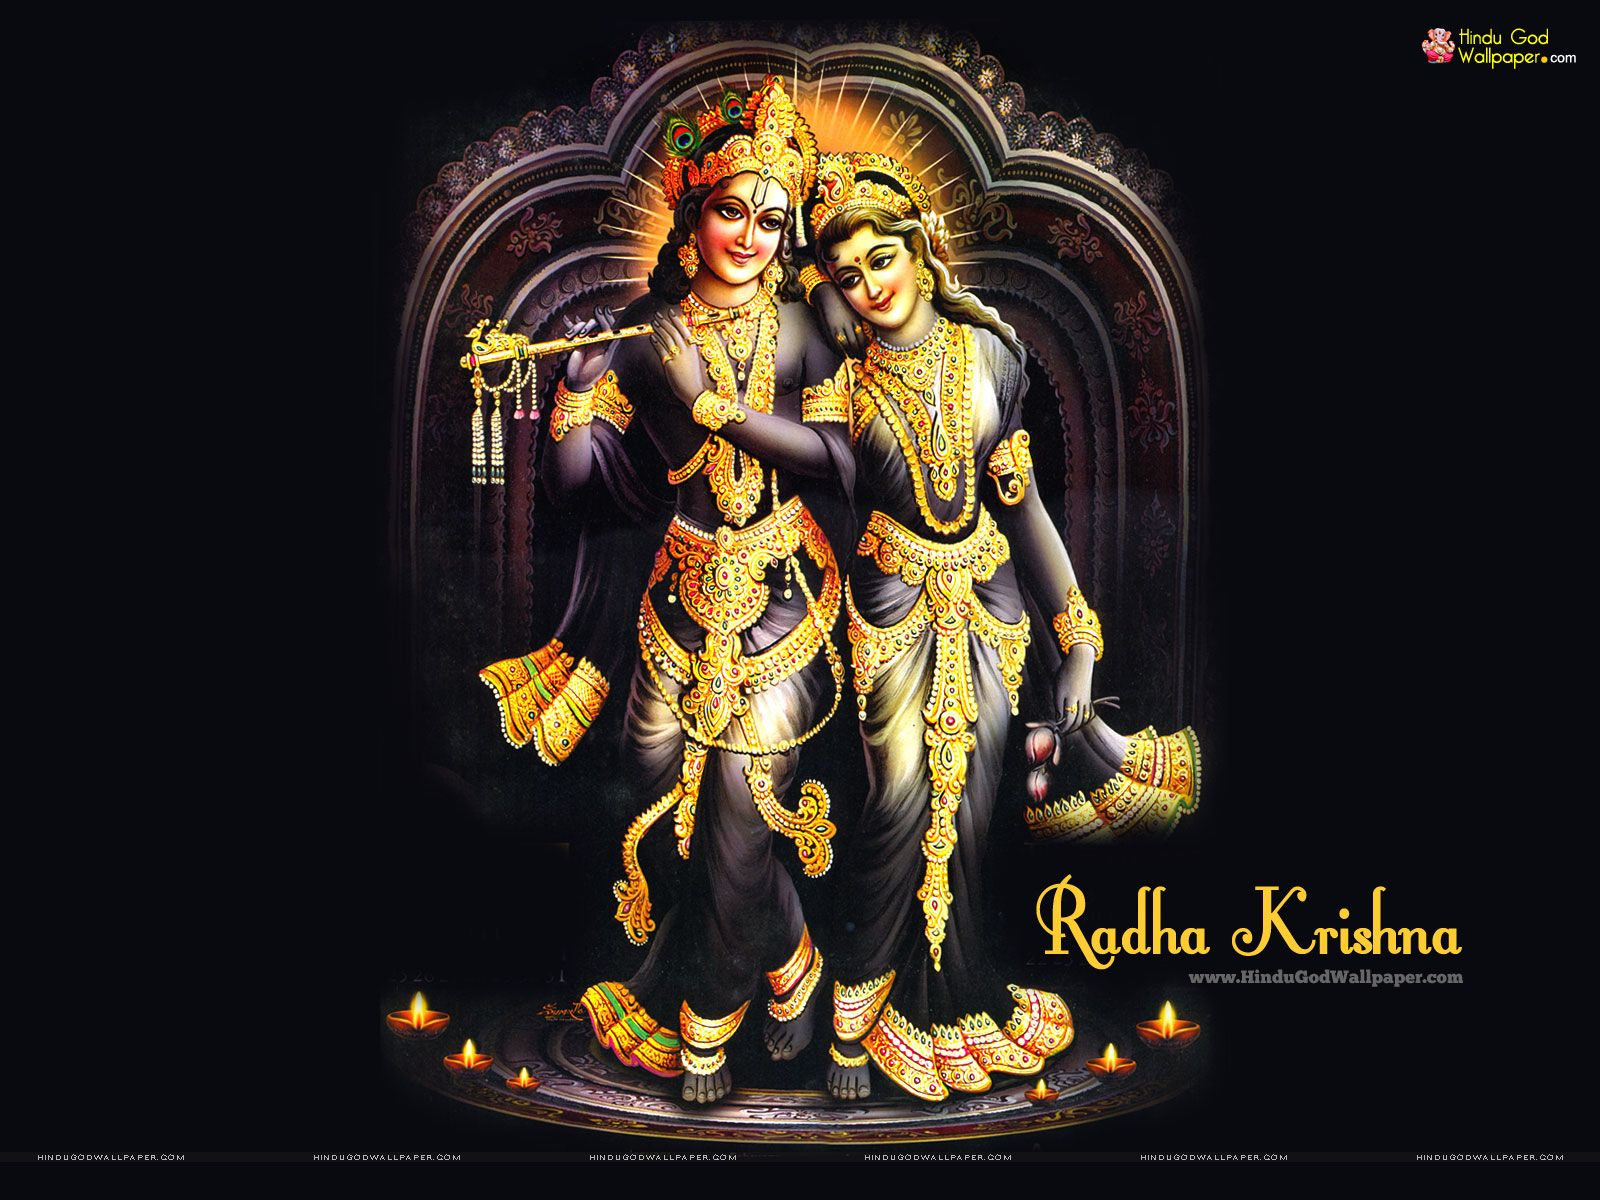 Radha Krishna Wallpaper Hd Full Size 1600x1200px Lord Krishna Images Krishna Images Lord Krishna Wallpapers